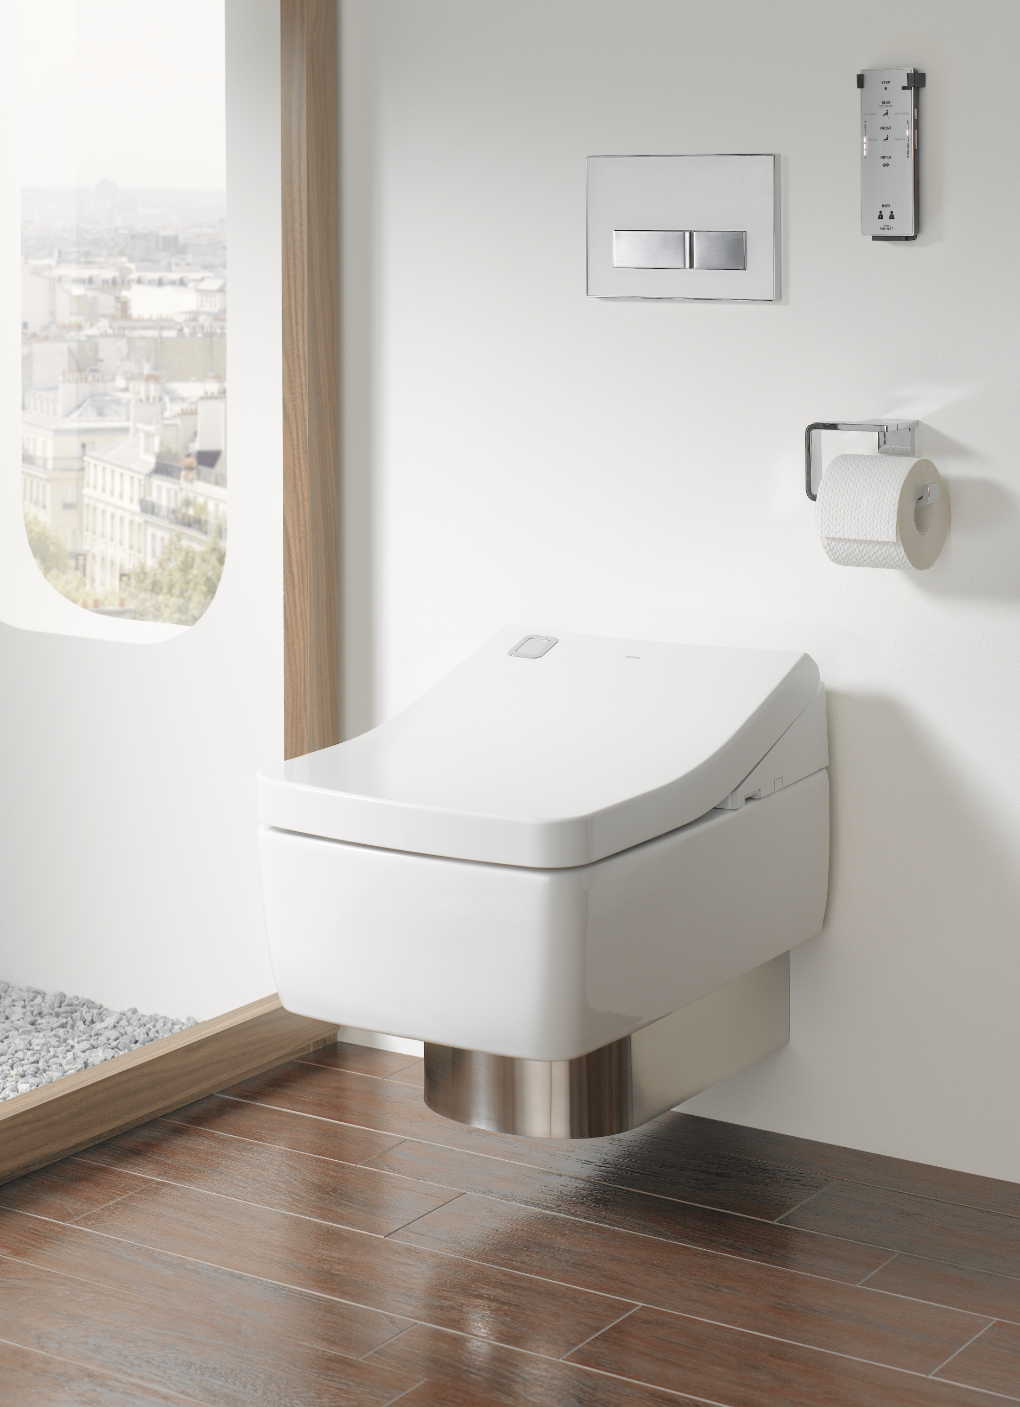 Astounding The Sg Washlet Offers All The Features Available In All Gmtry Best Dining Table And Chair Ideas Images Gmtryco